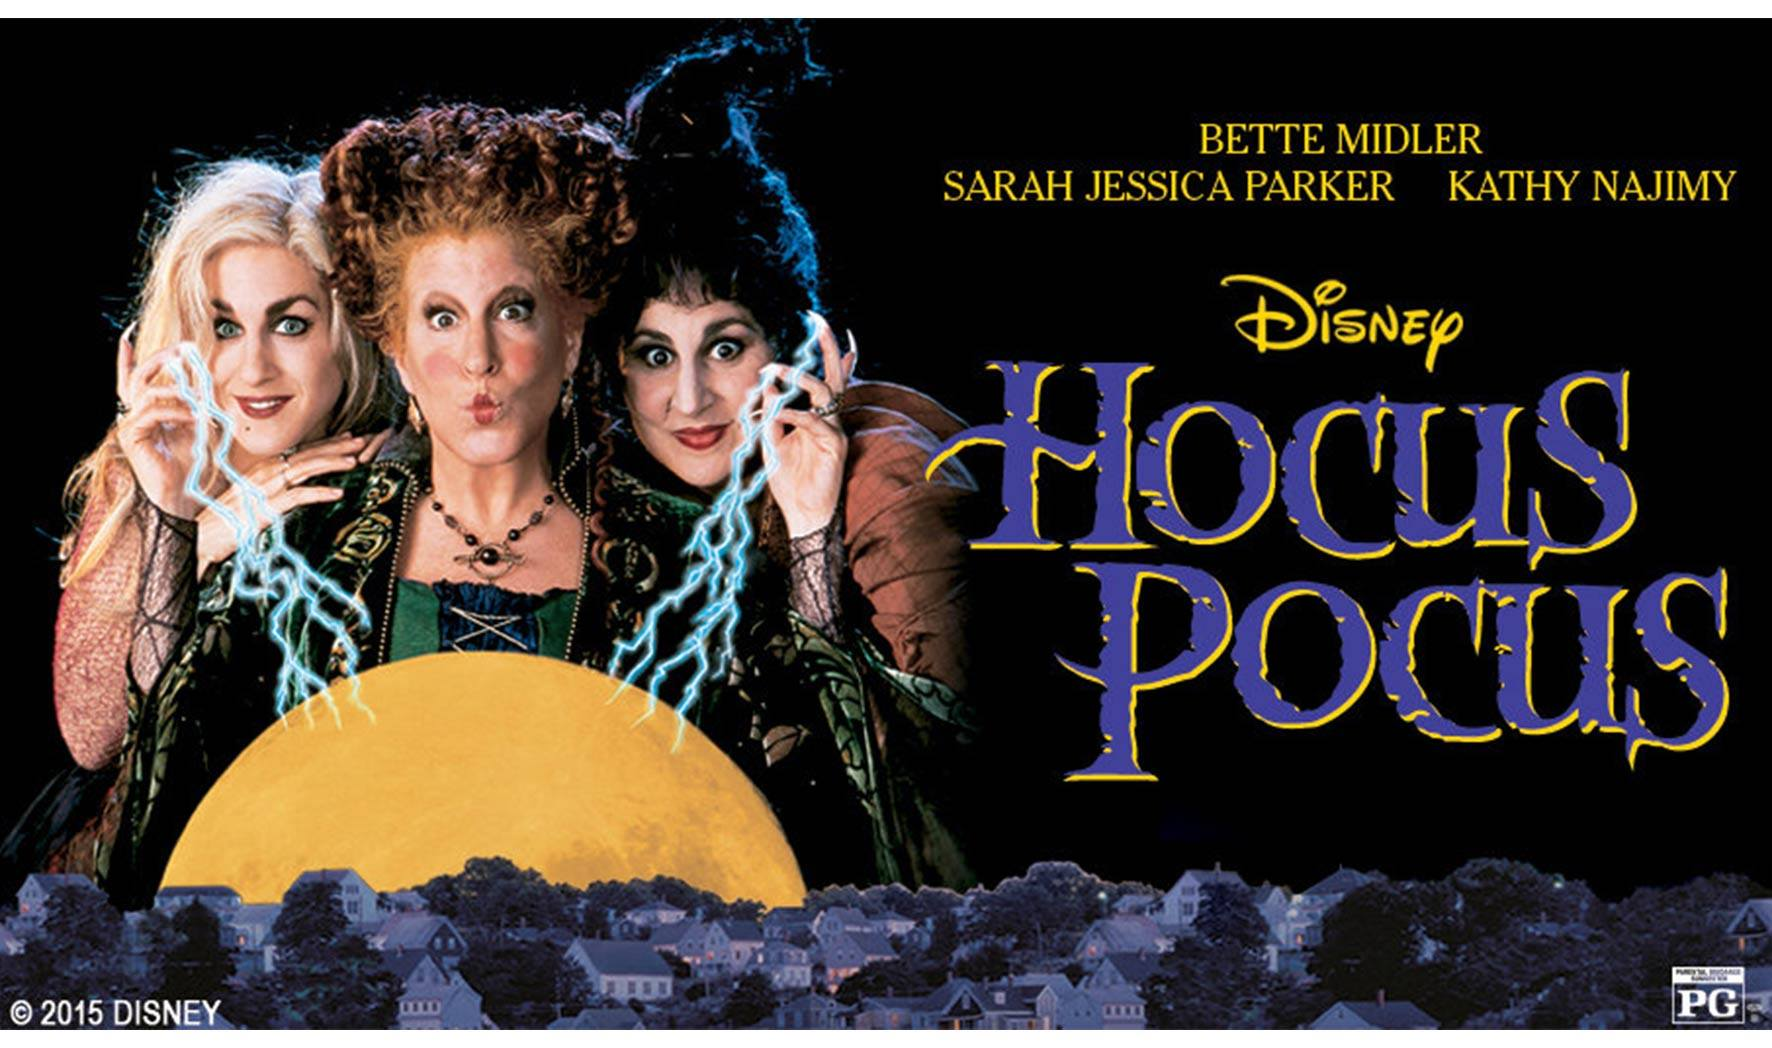 This is the cover for the cult movie hocus pocus part 1.